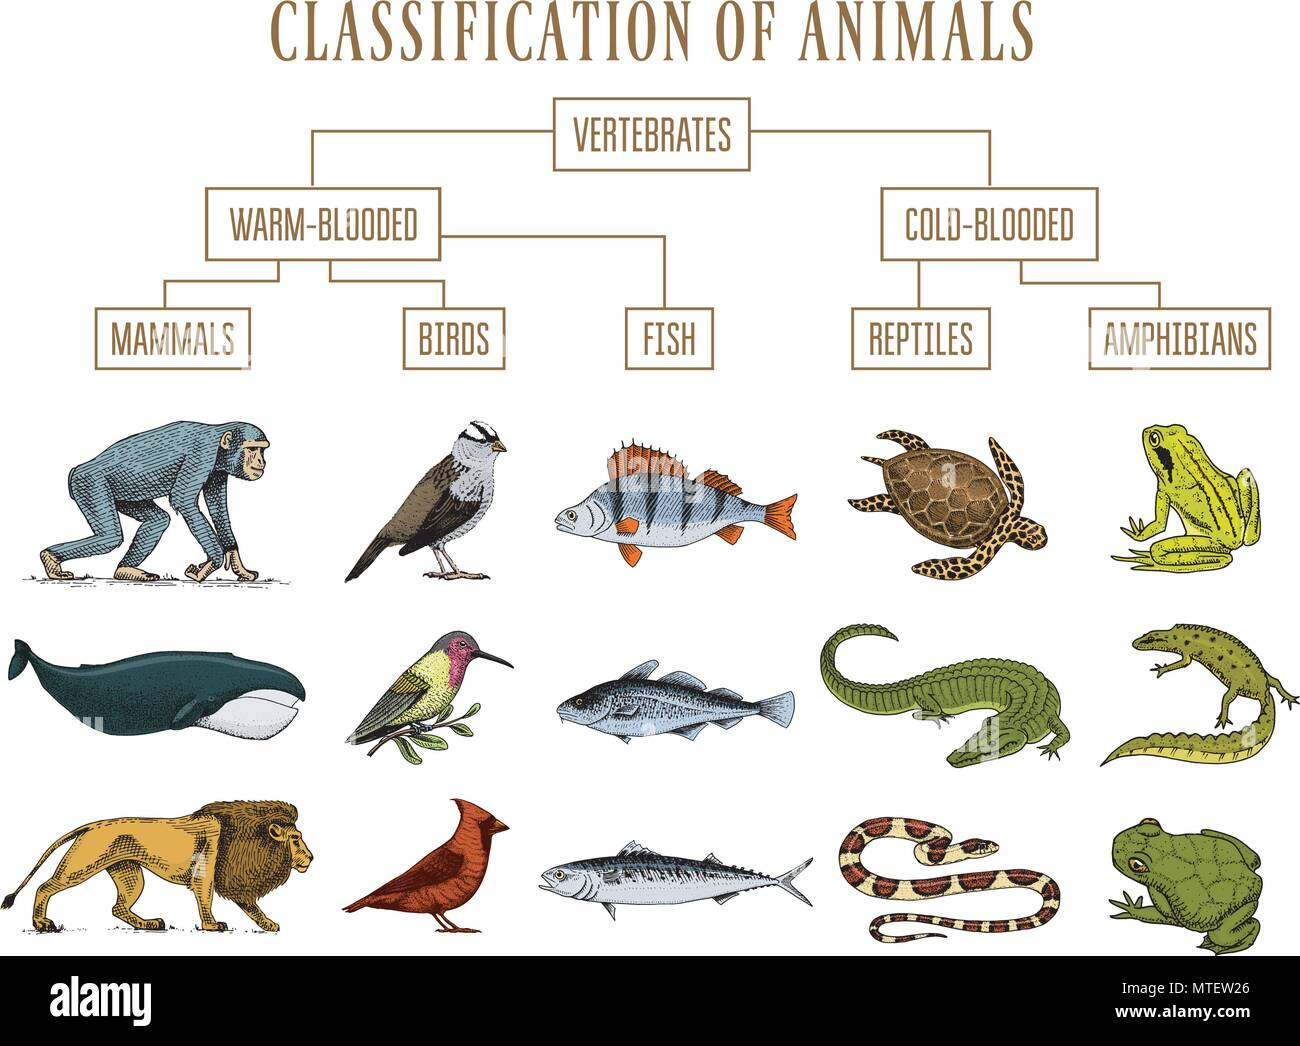 Hand Drawn Hippo Animal Vector Stockfotos & Hand Drawn Hippo Animal ...